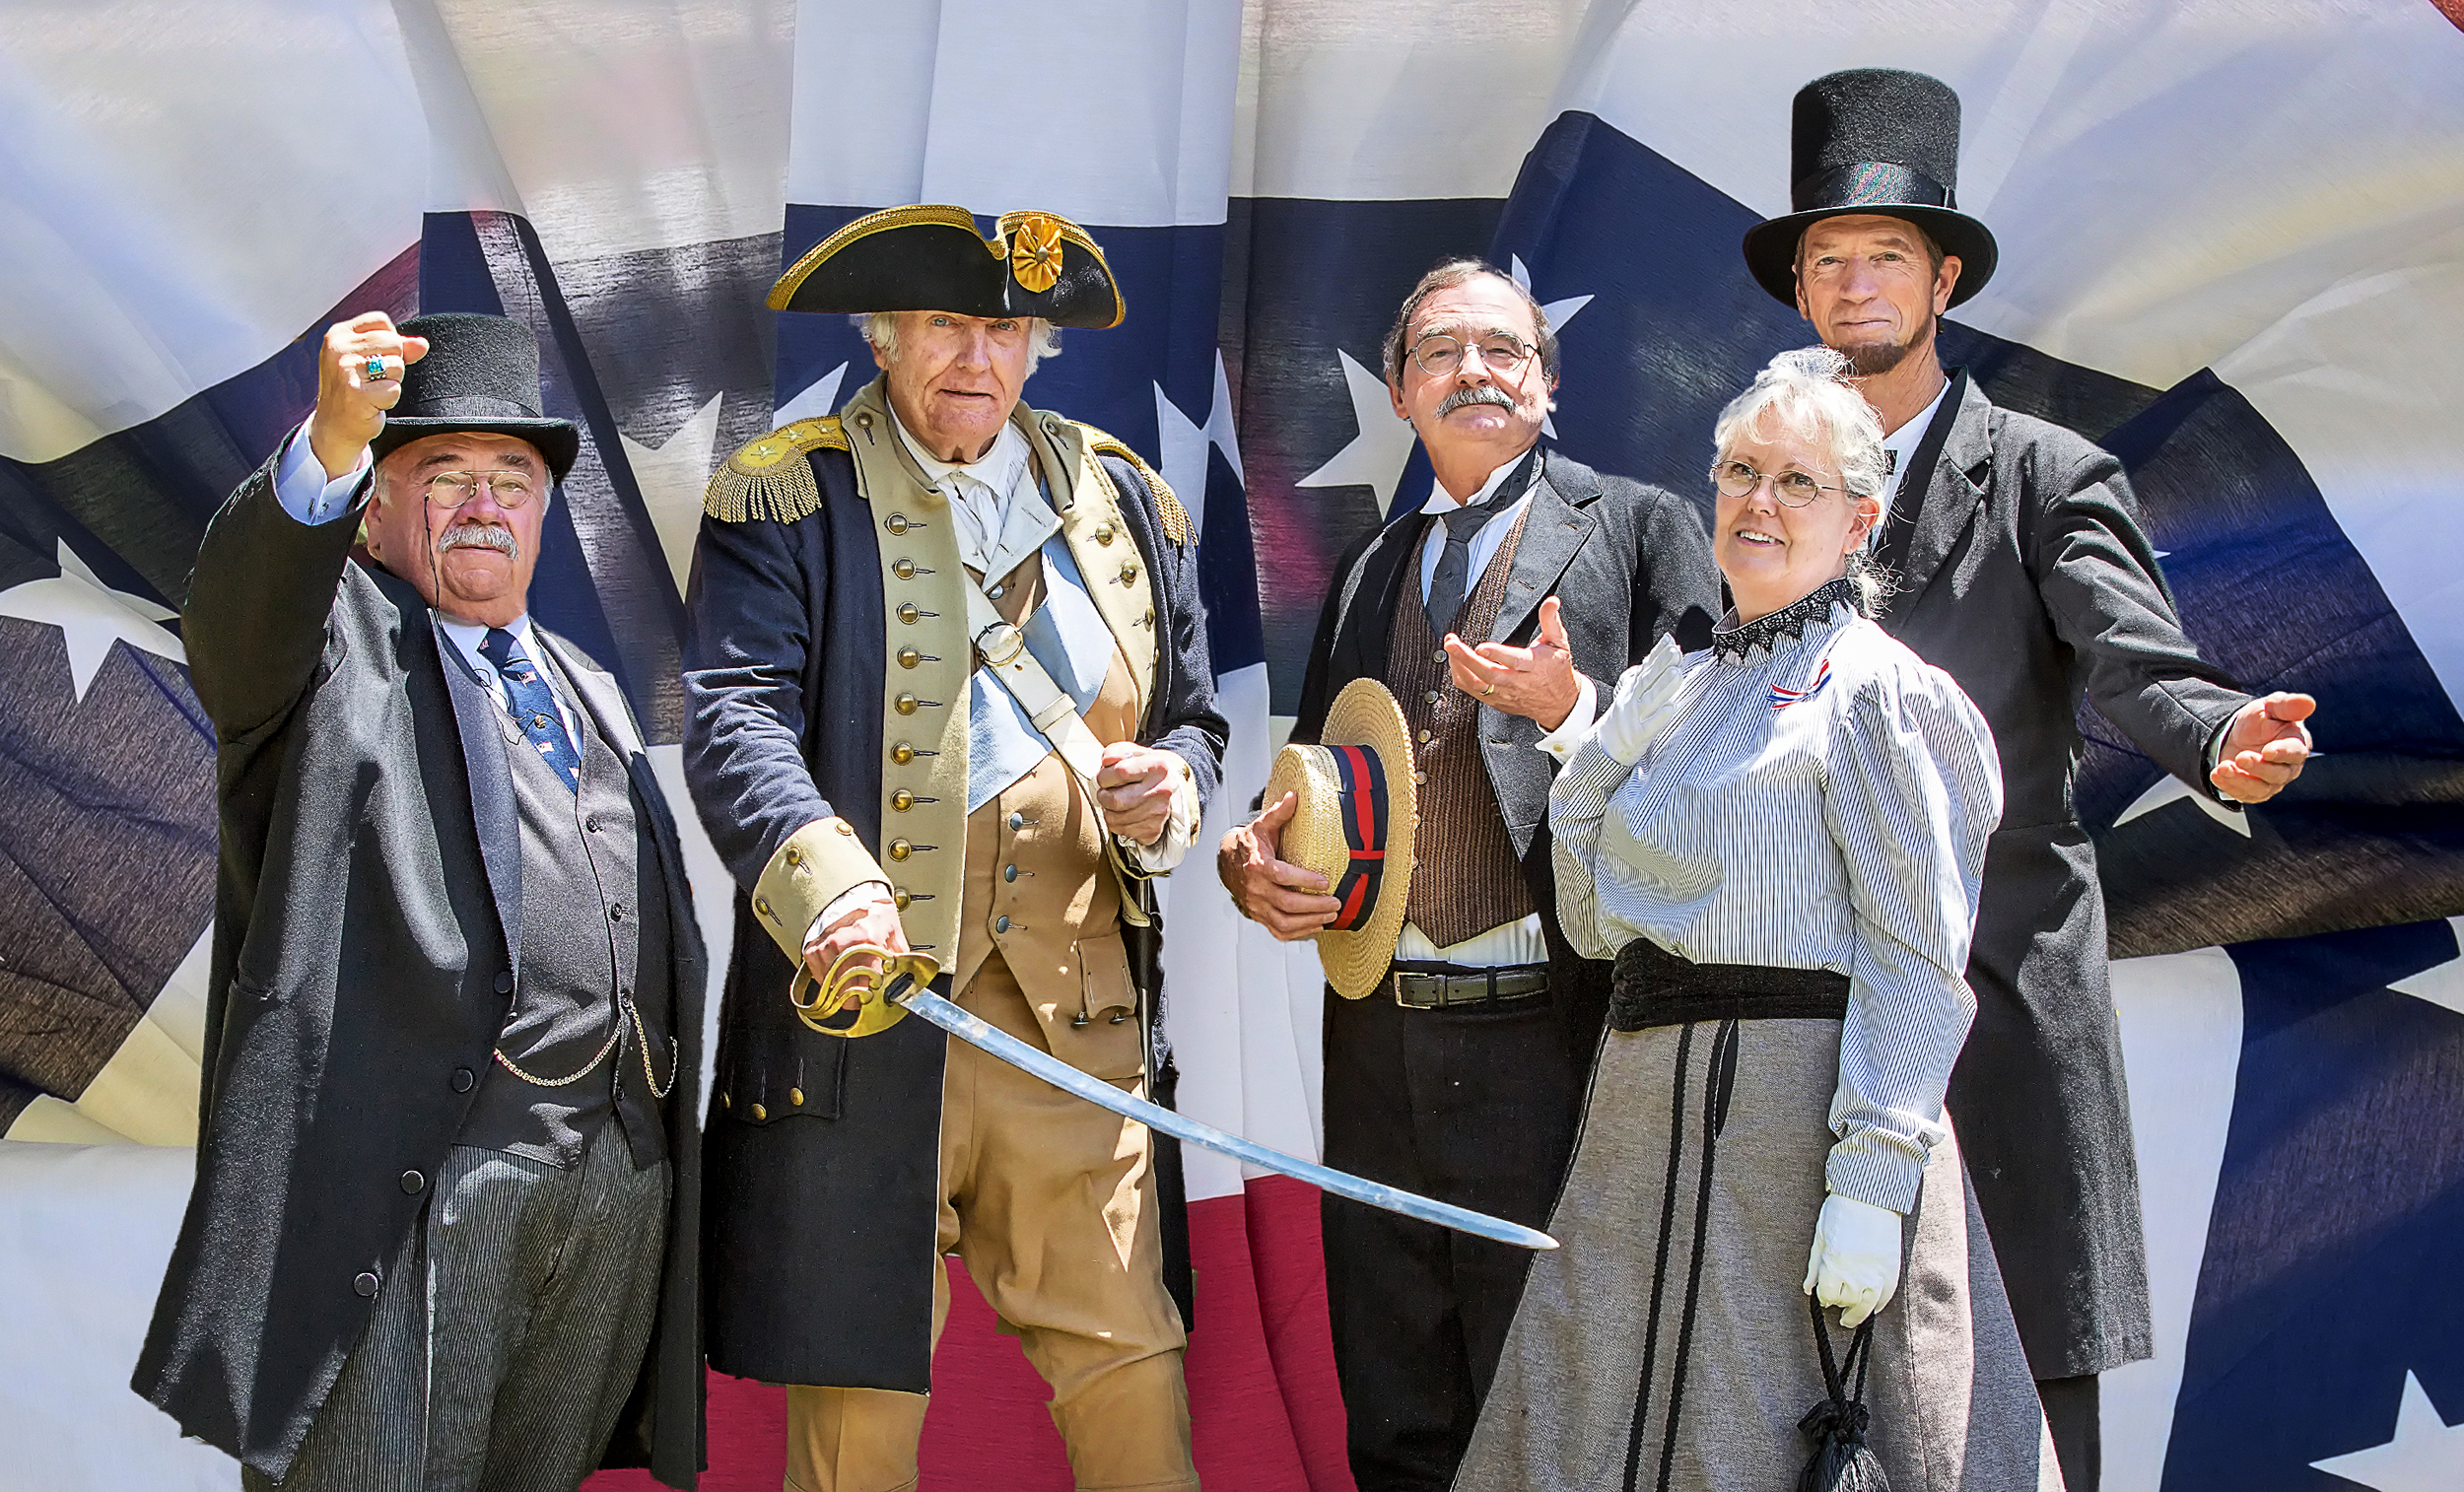 Group photo of docents in costume